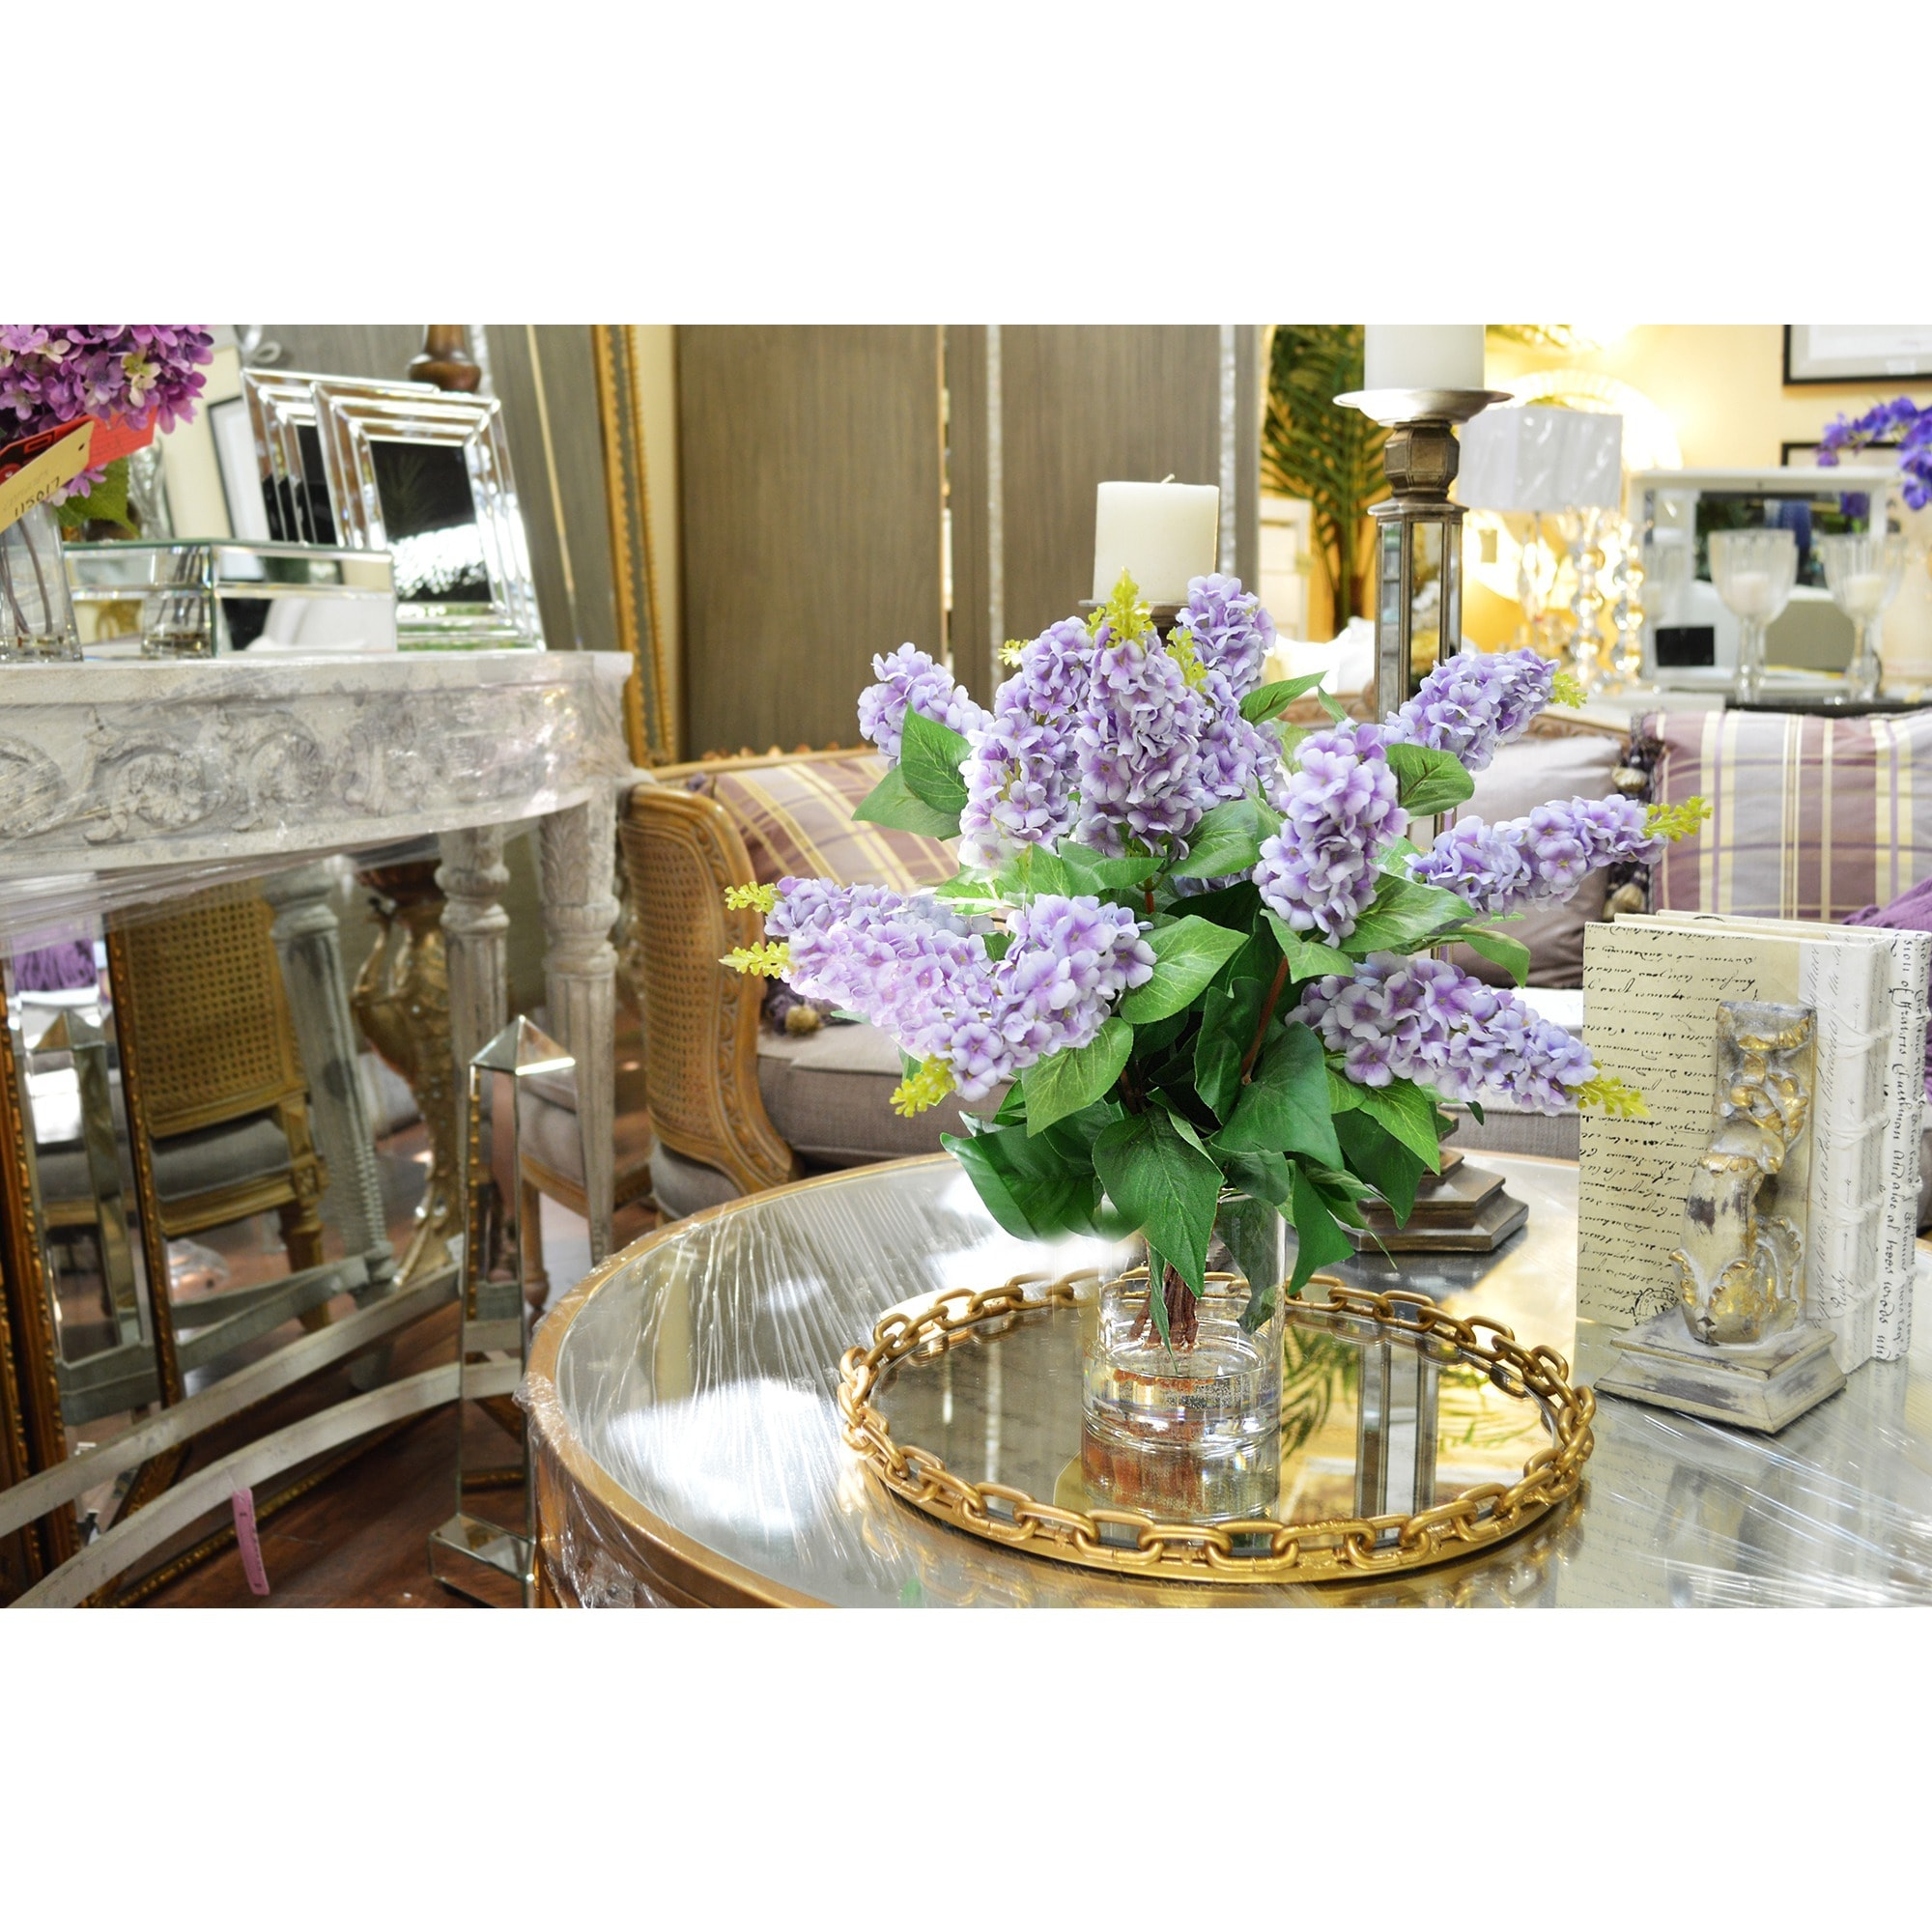 Creative displays lavender lilac silk flowers in acrylic water creative displays lavender lilac silk flowers in acrylic water filled glass vase free shipping today overstock 16996959 mightylinksfo Gallery